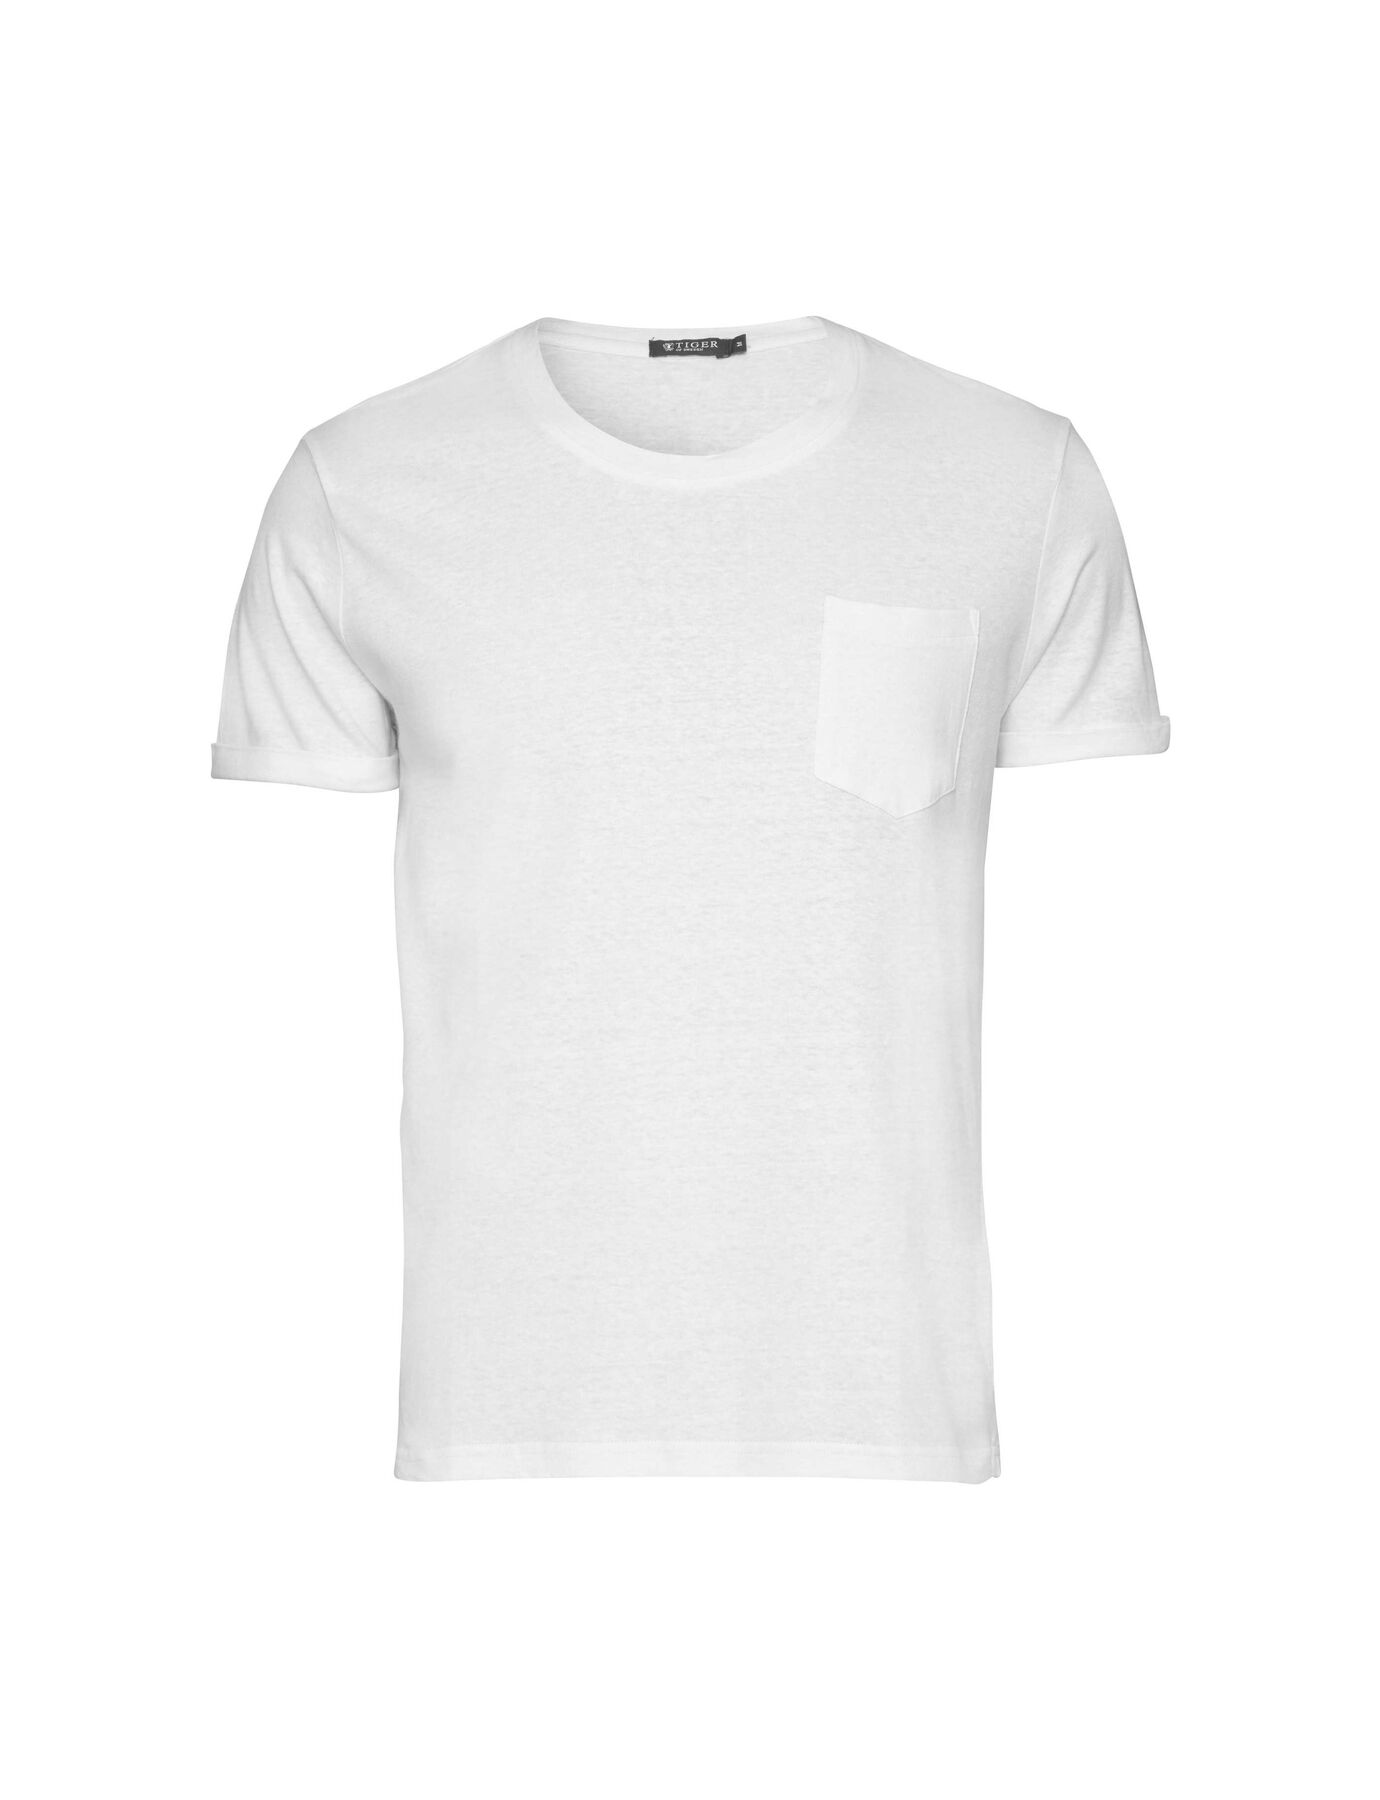 KIET T-SHIRT in Pure white from Tiger of Sweden